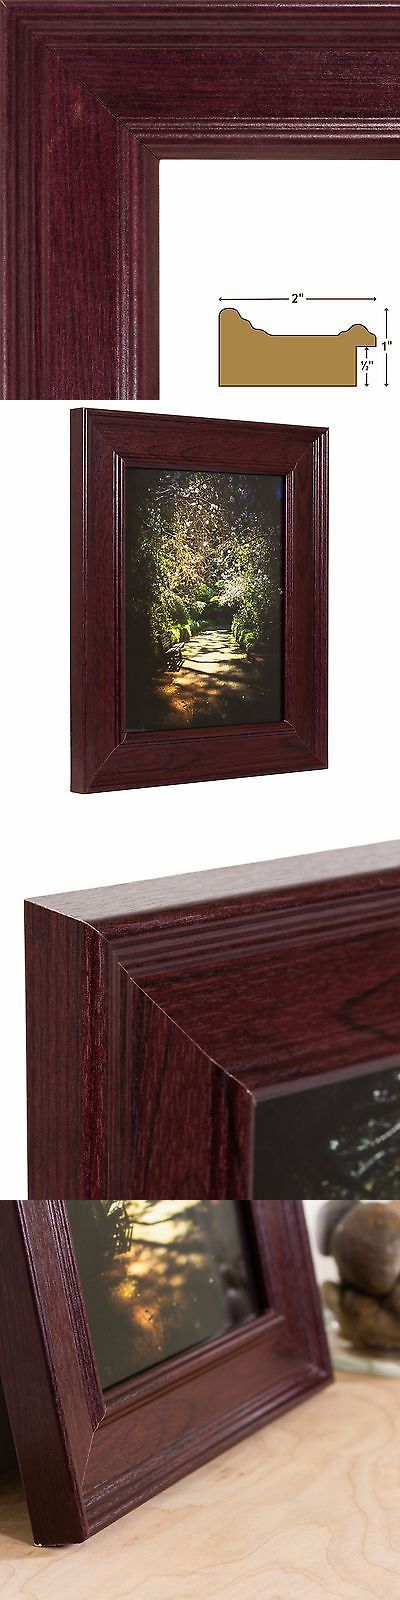 Frames 79654: Craig Frames Colonial, 2.0 Mahogany Red Picture Frame -> BUY IT NOW ONLY: $42 on eBay!